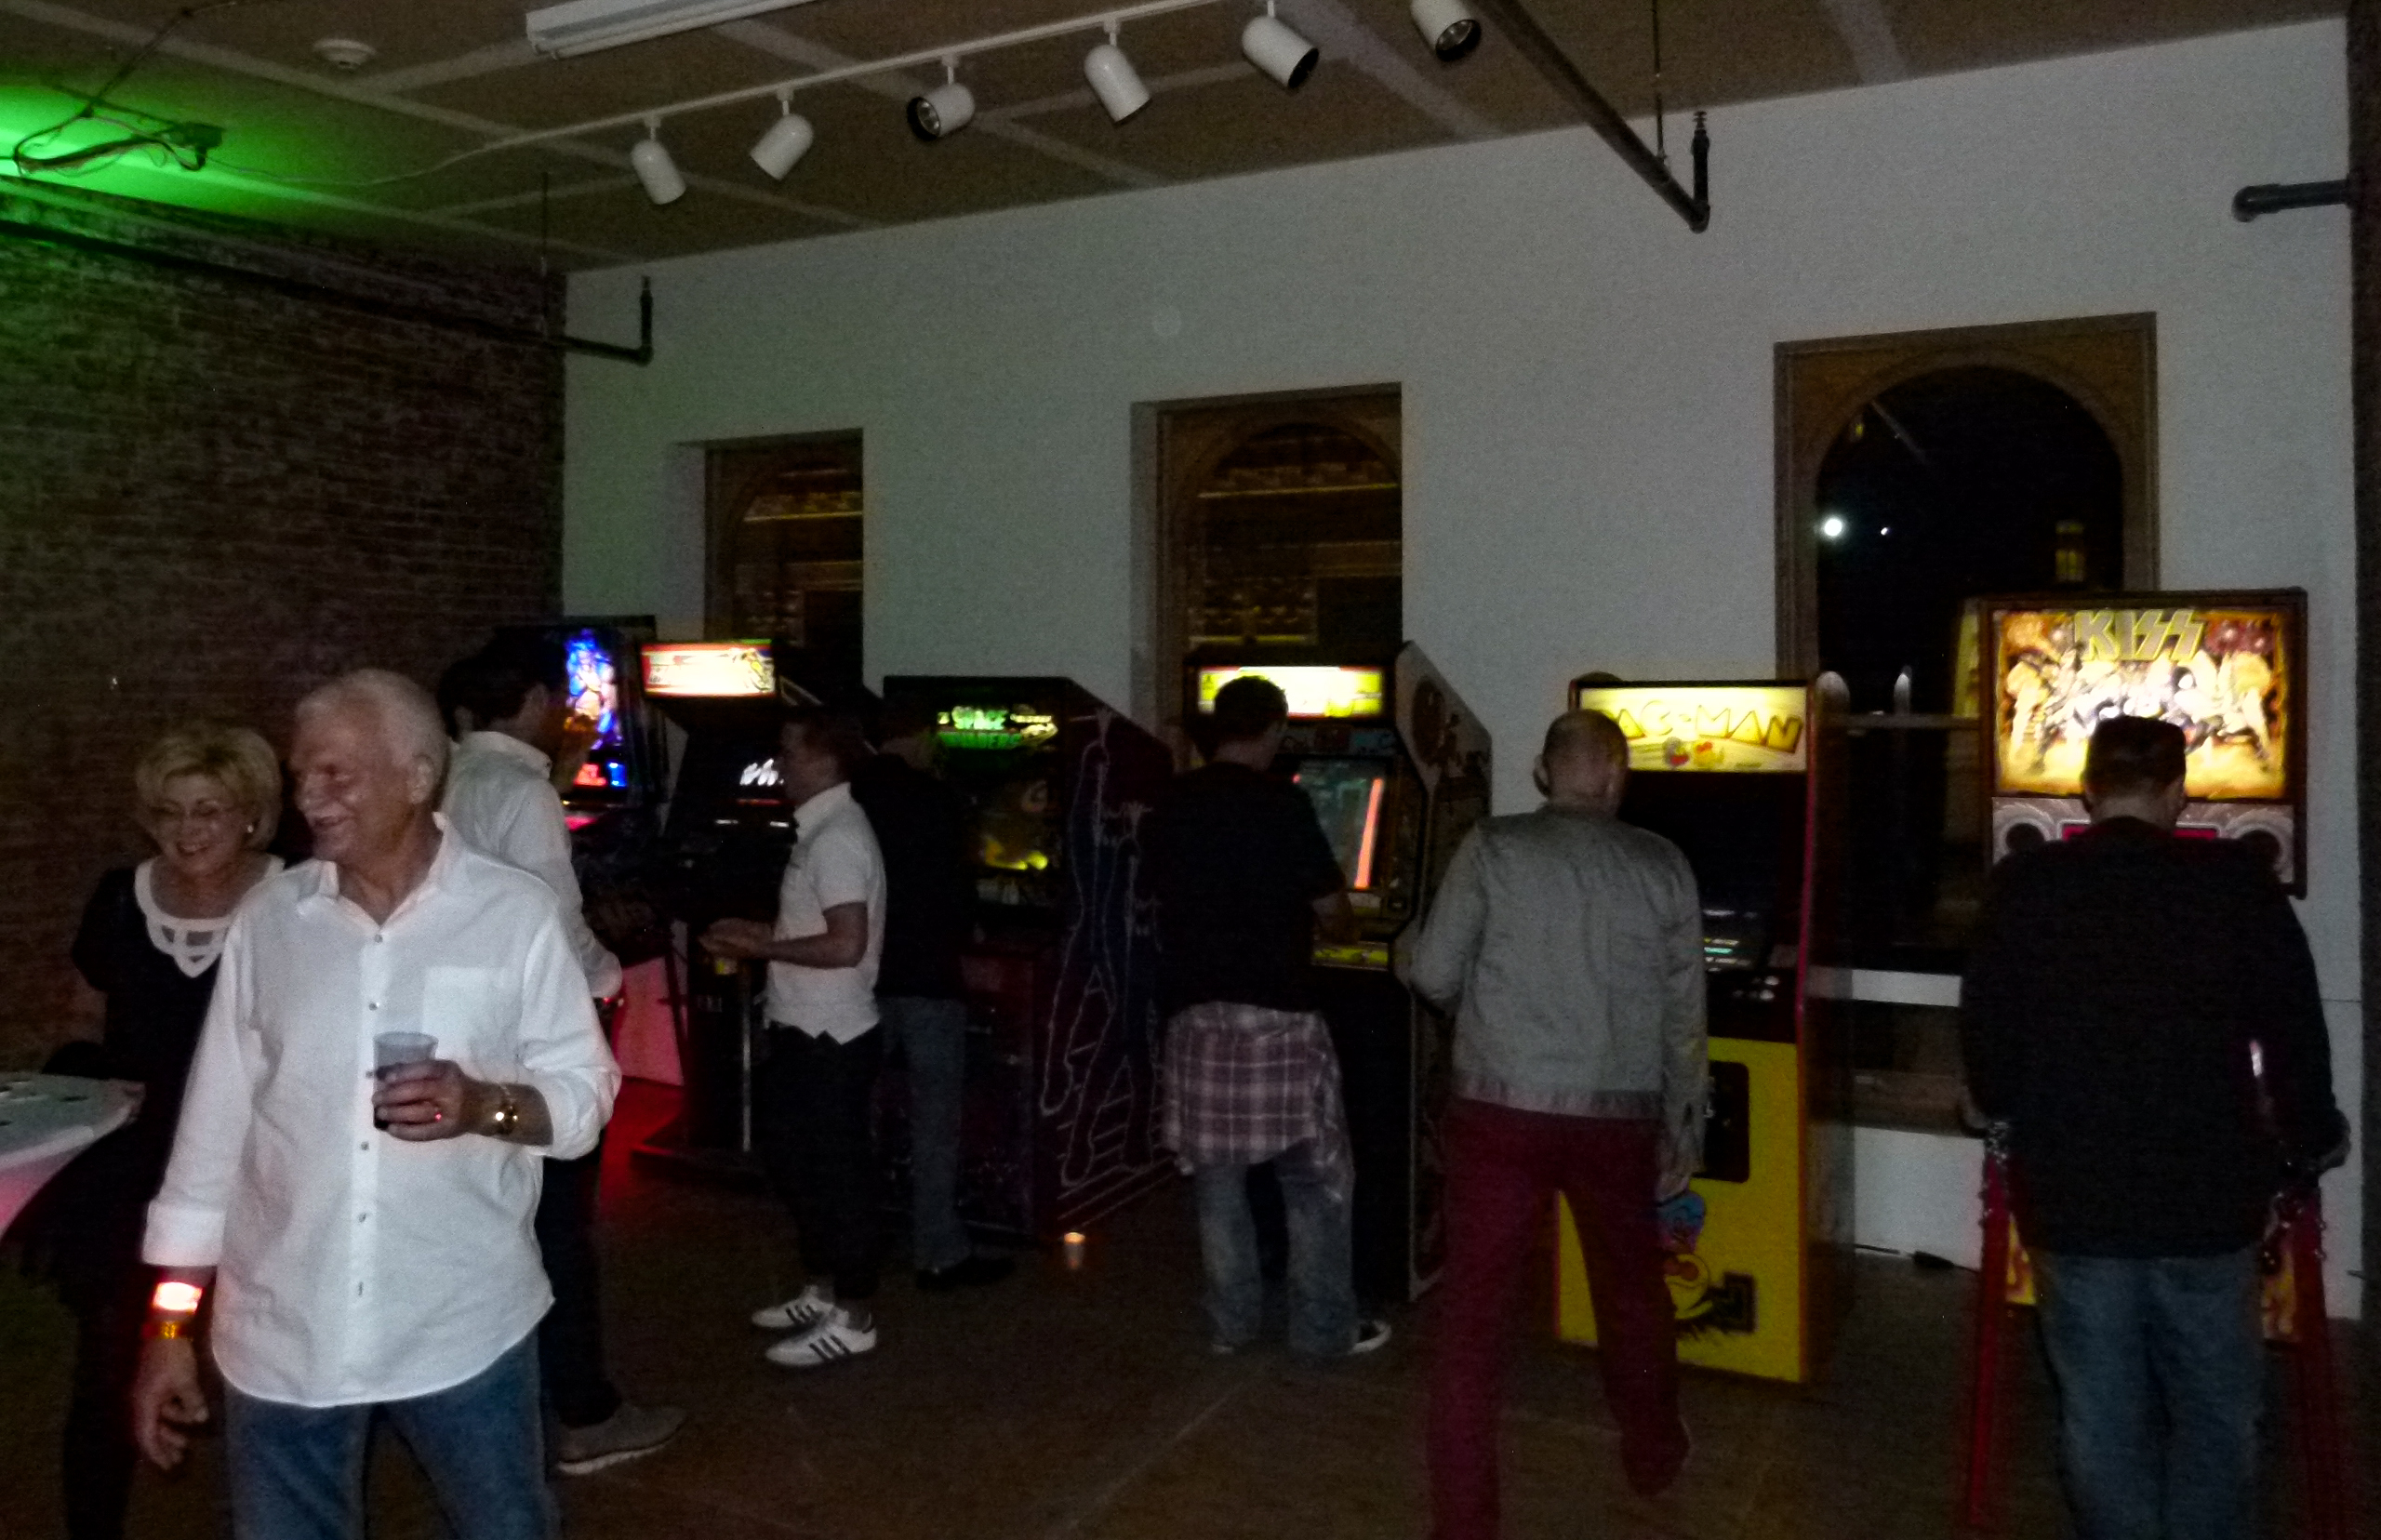 The pinball and arcade game room.